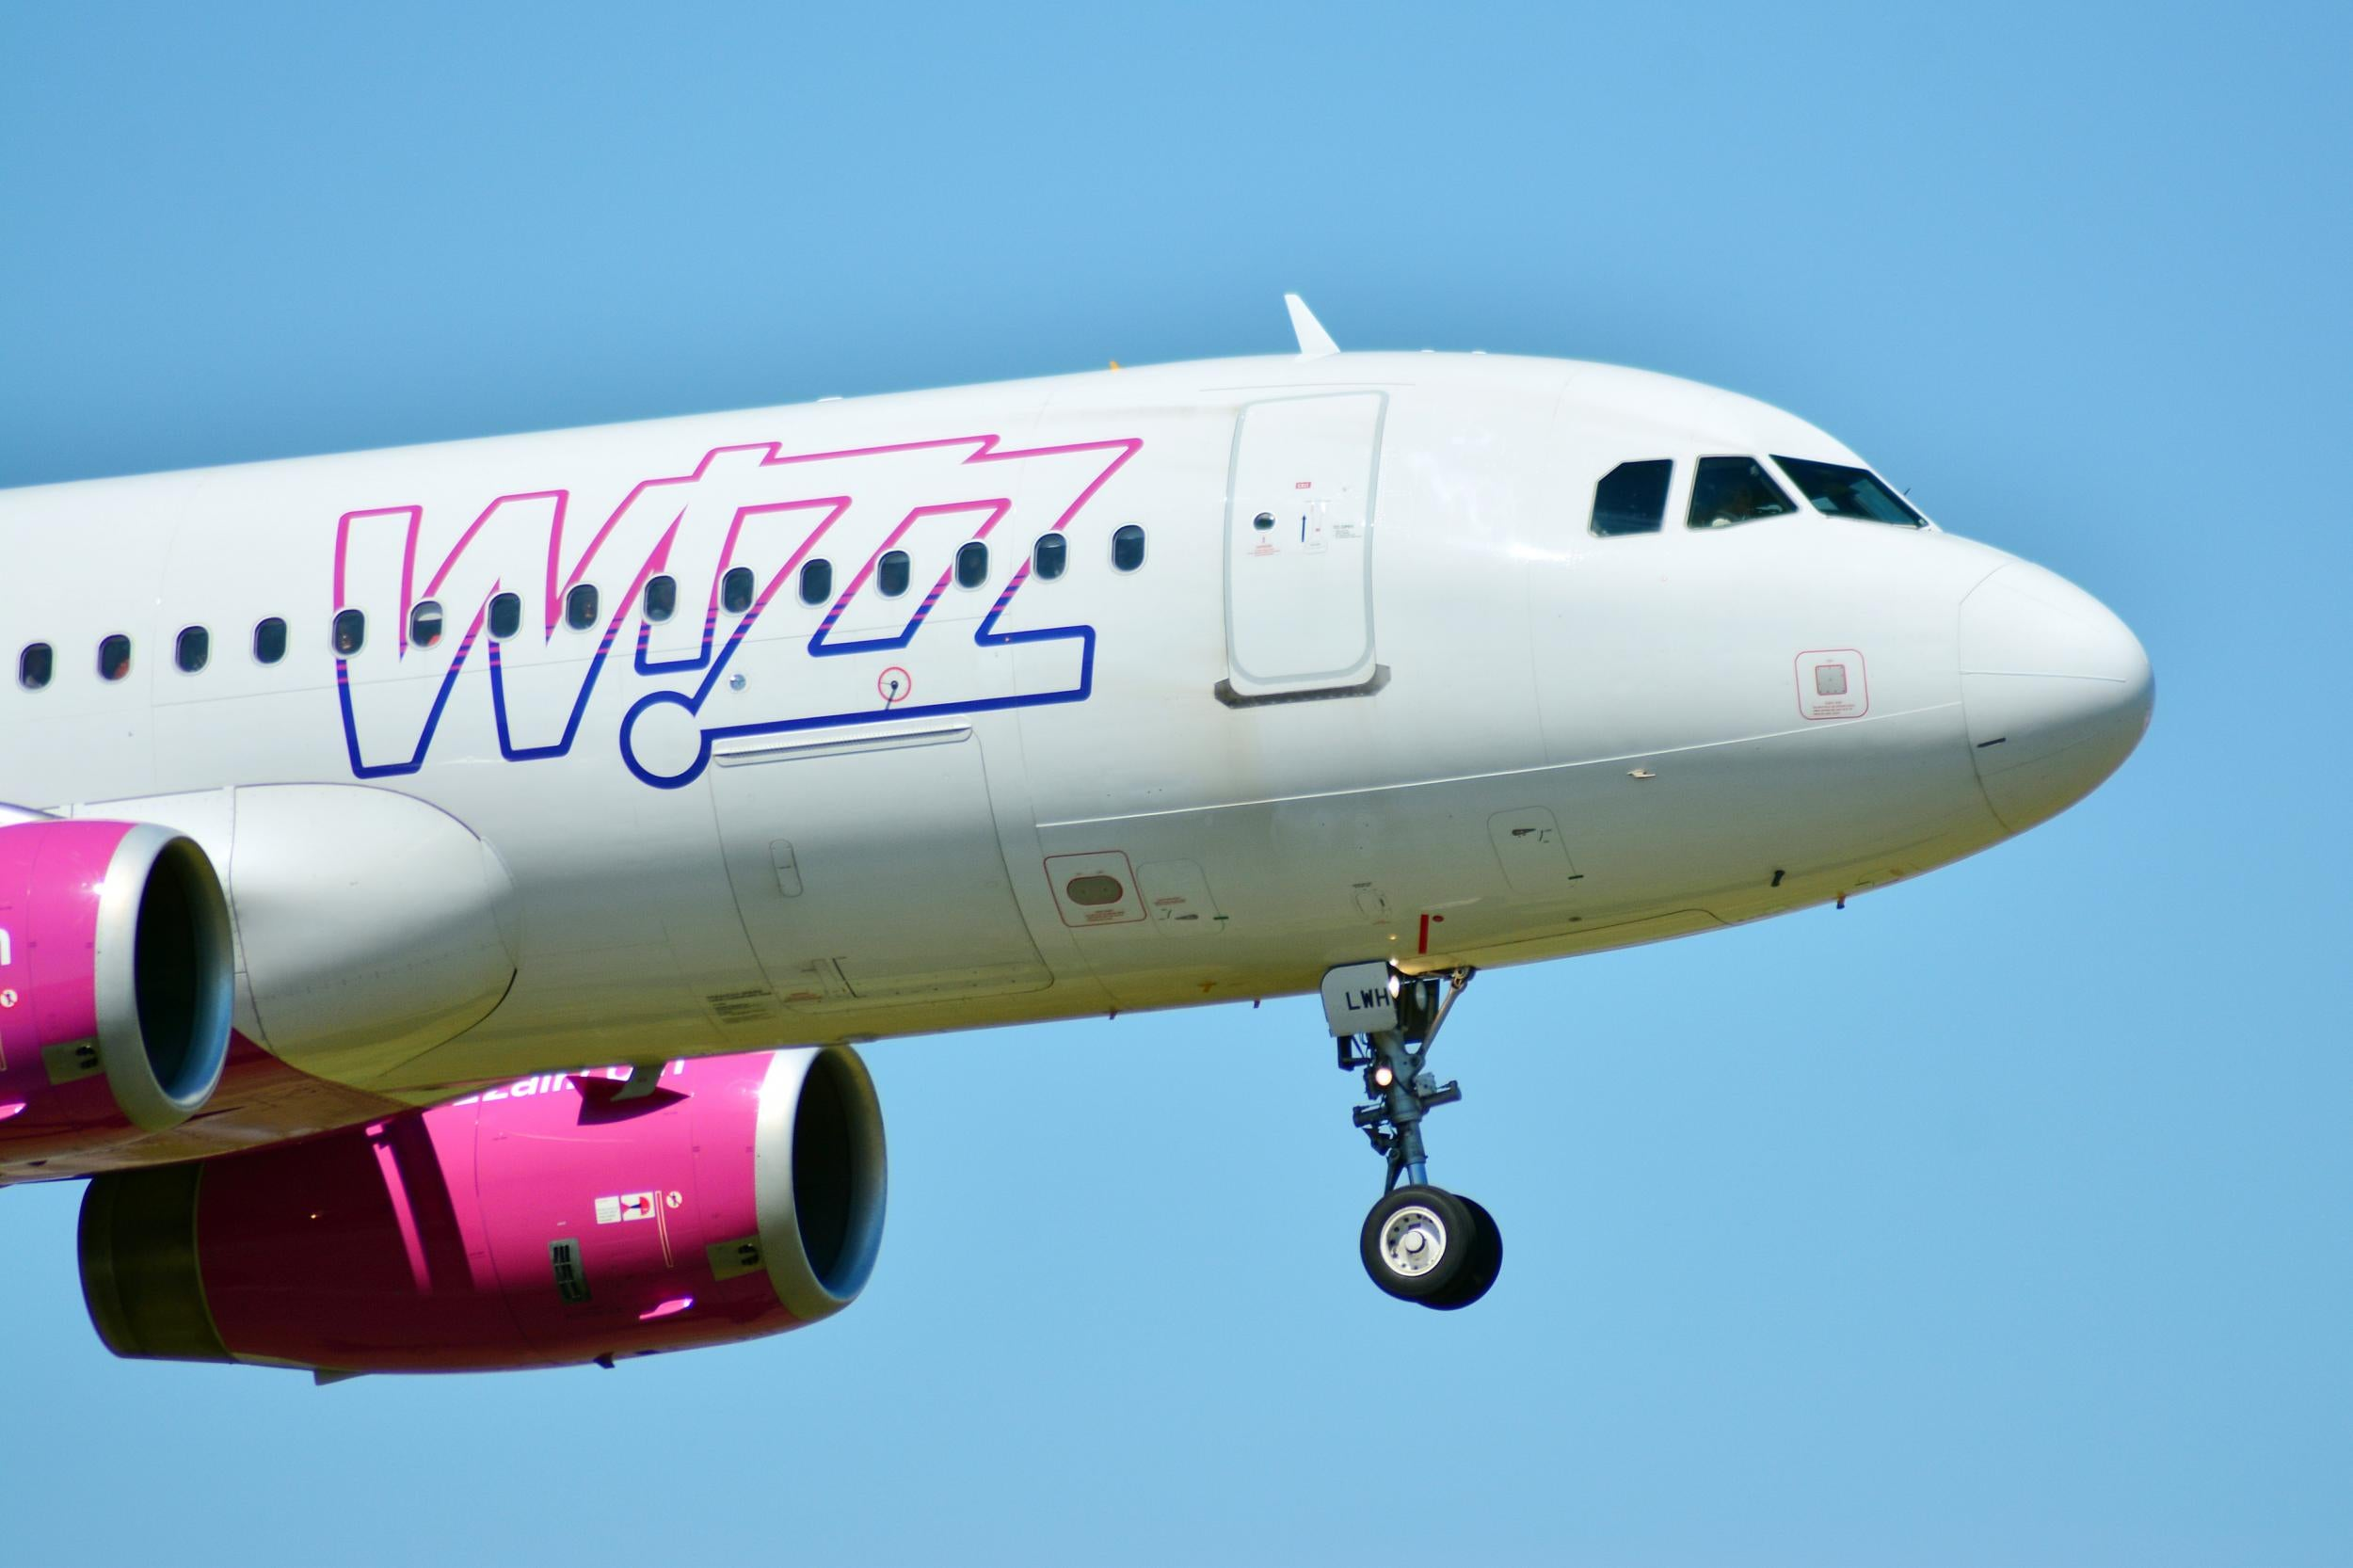 Wizz Air Charges Passengers Extra To Hold On To Hand Luggage The Independent The Independent